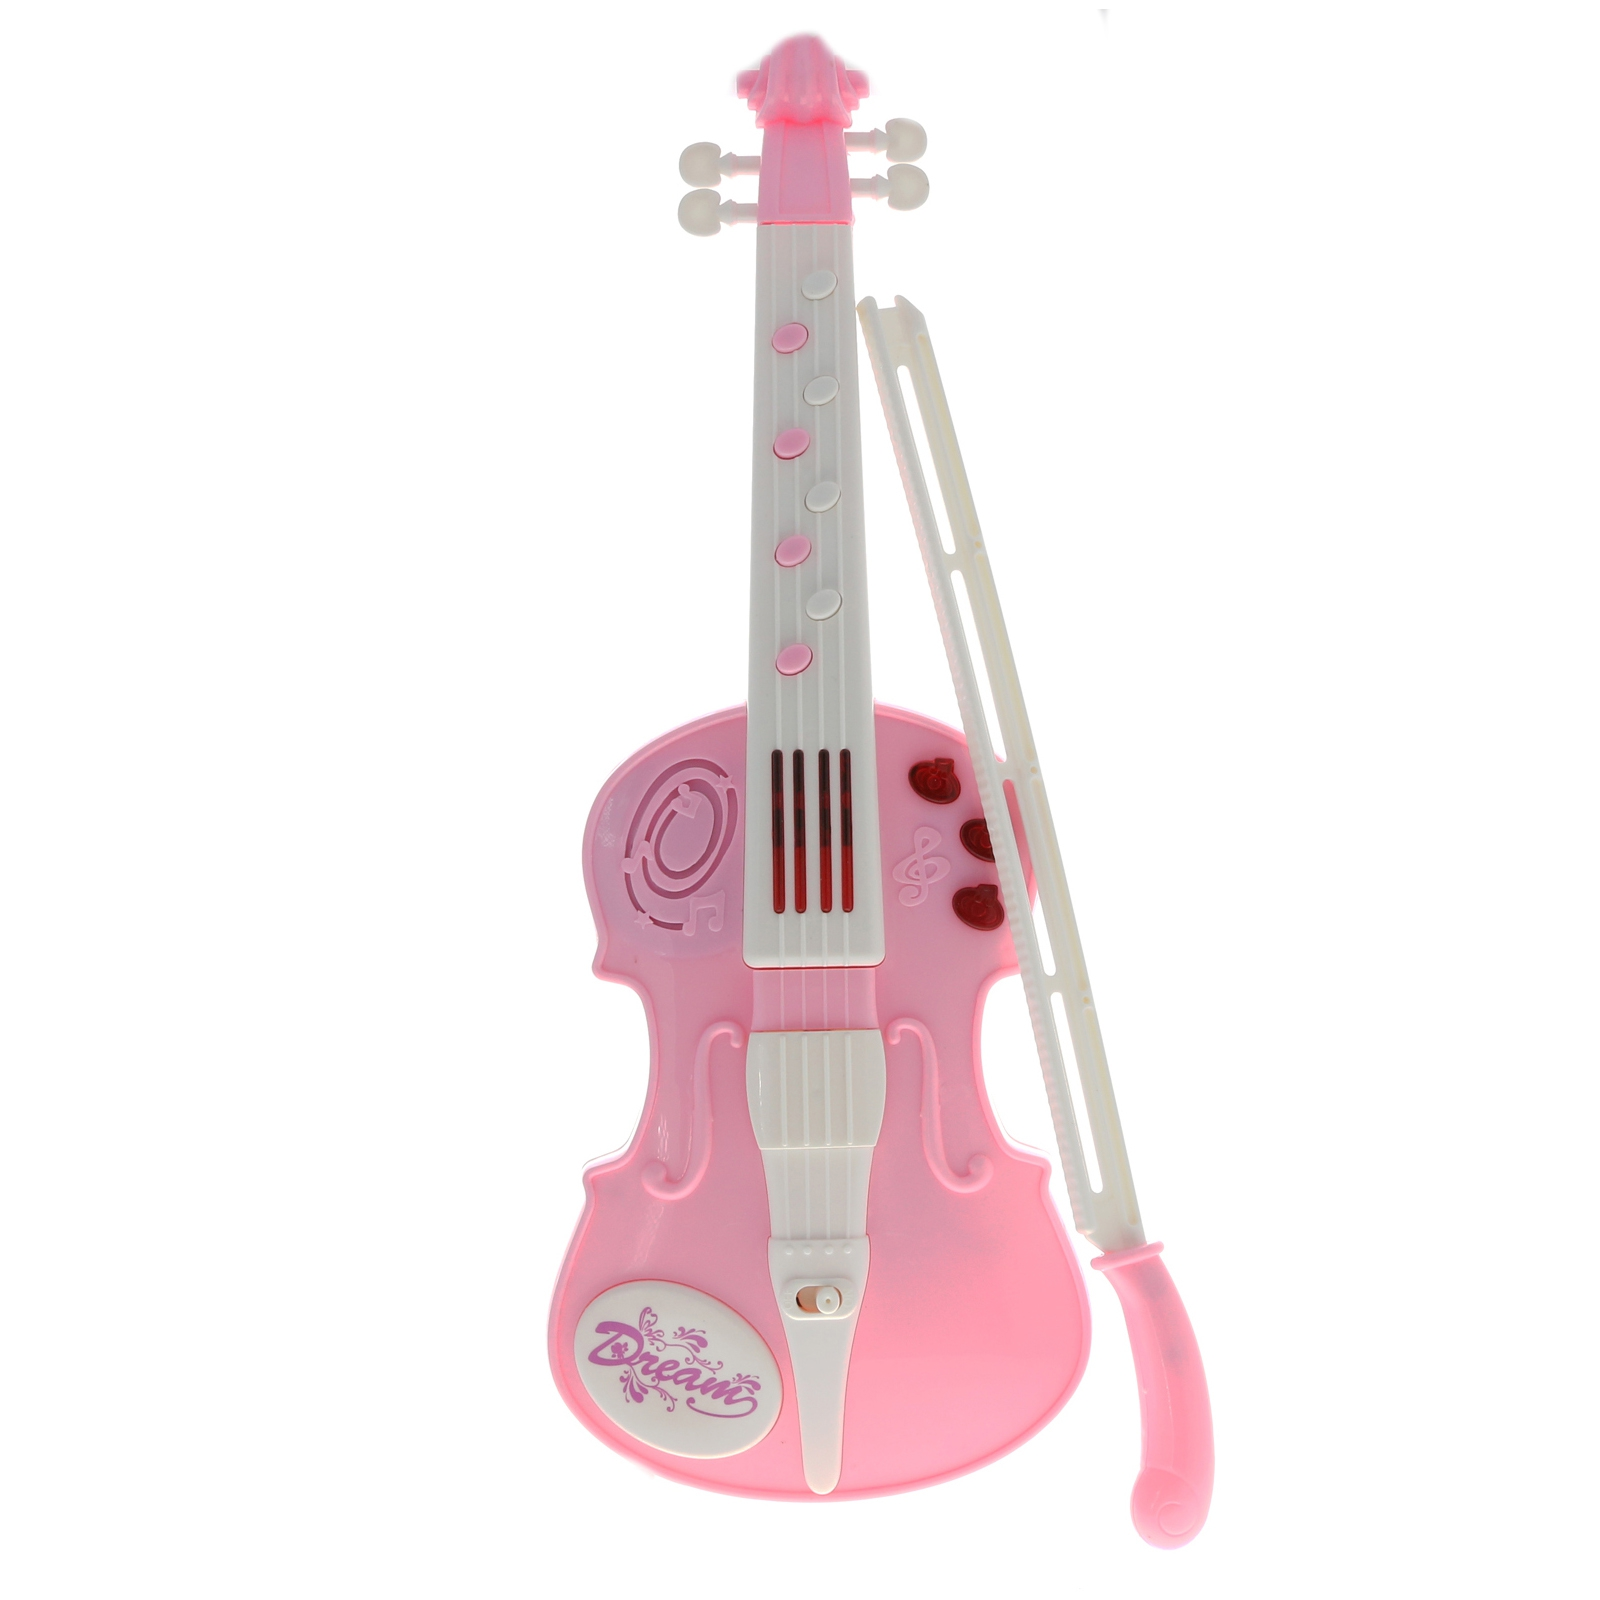 TychoTyke Girls Musical Violin Instrument Pretend Play Kids Light Up Toy - Pink